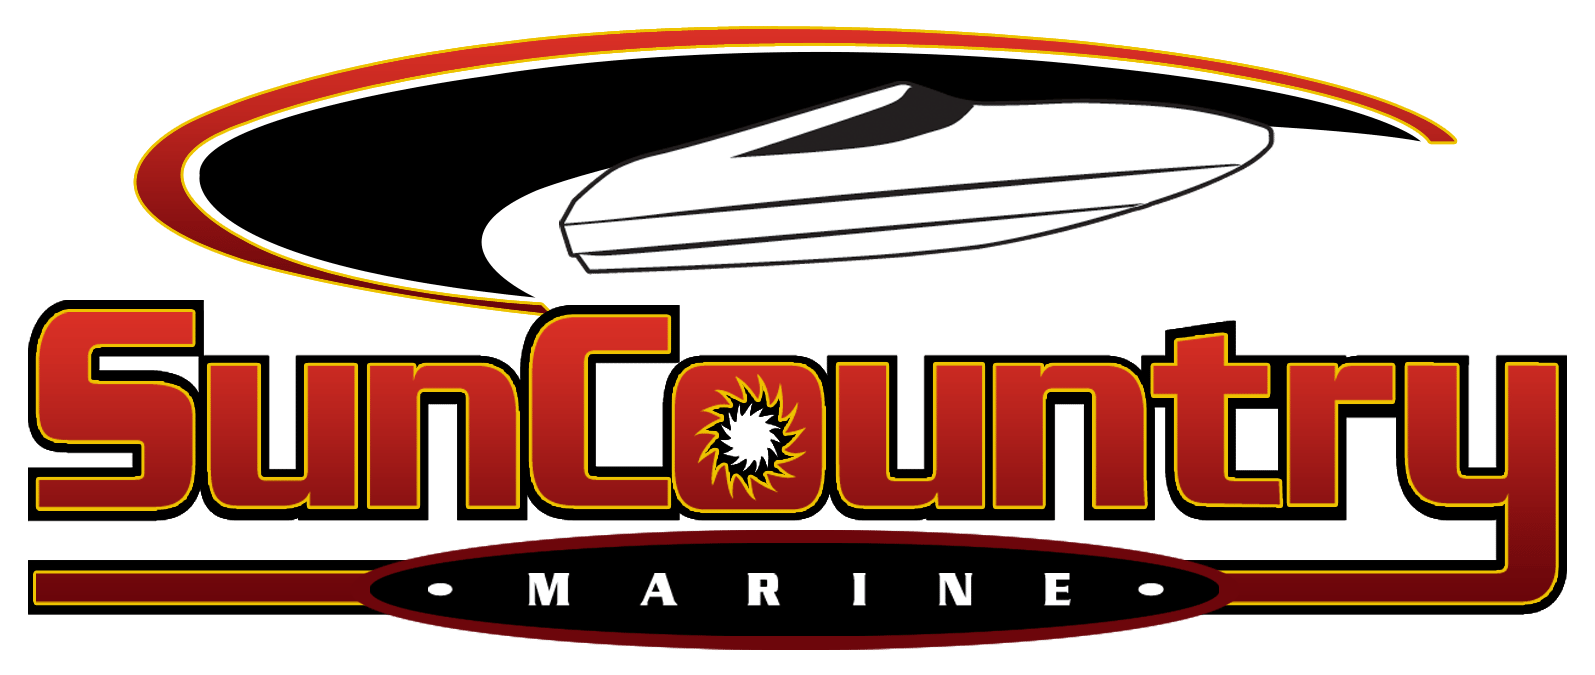 Sun country logo png. Welcome marine